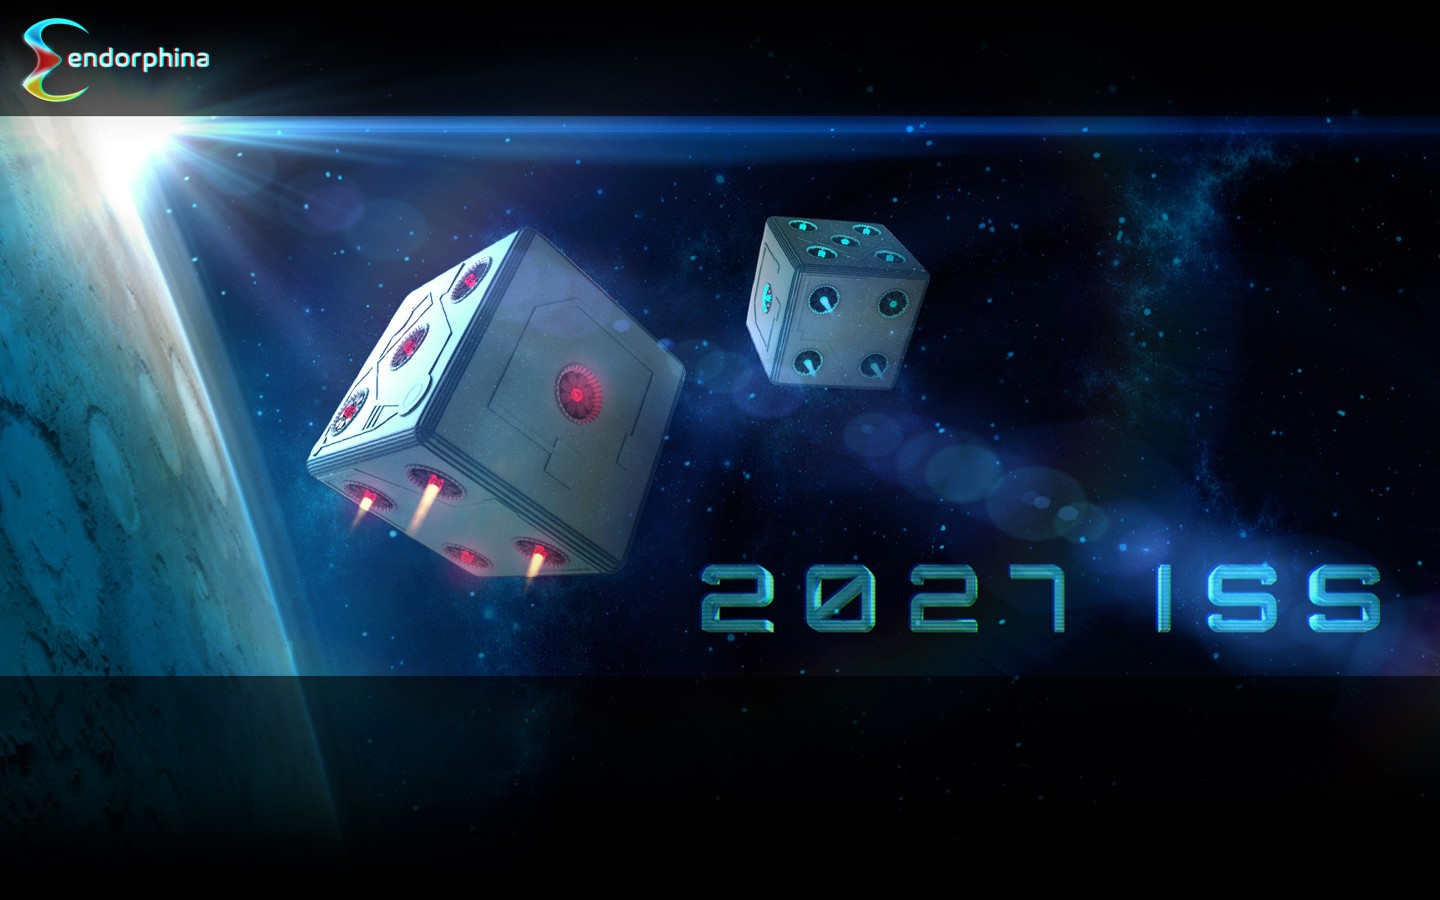 2027 ISS Online Casino Slot Game | Video Reviews